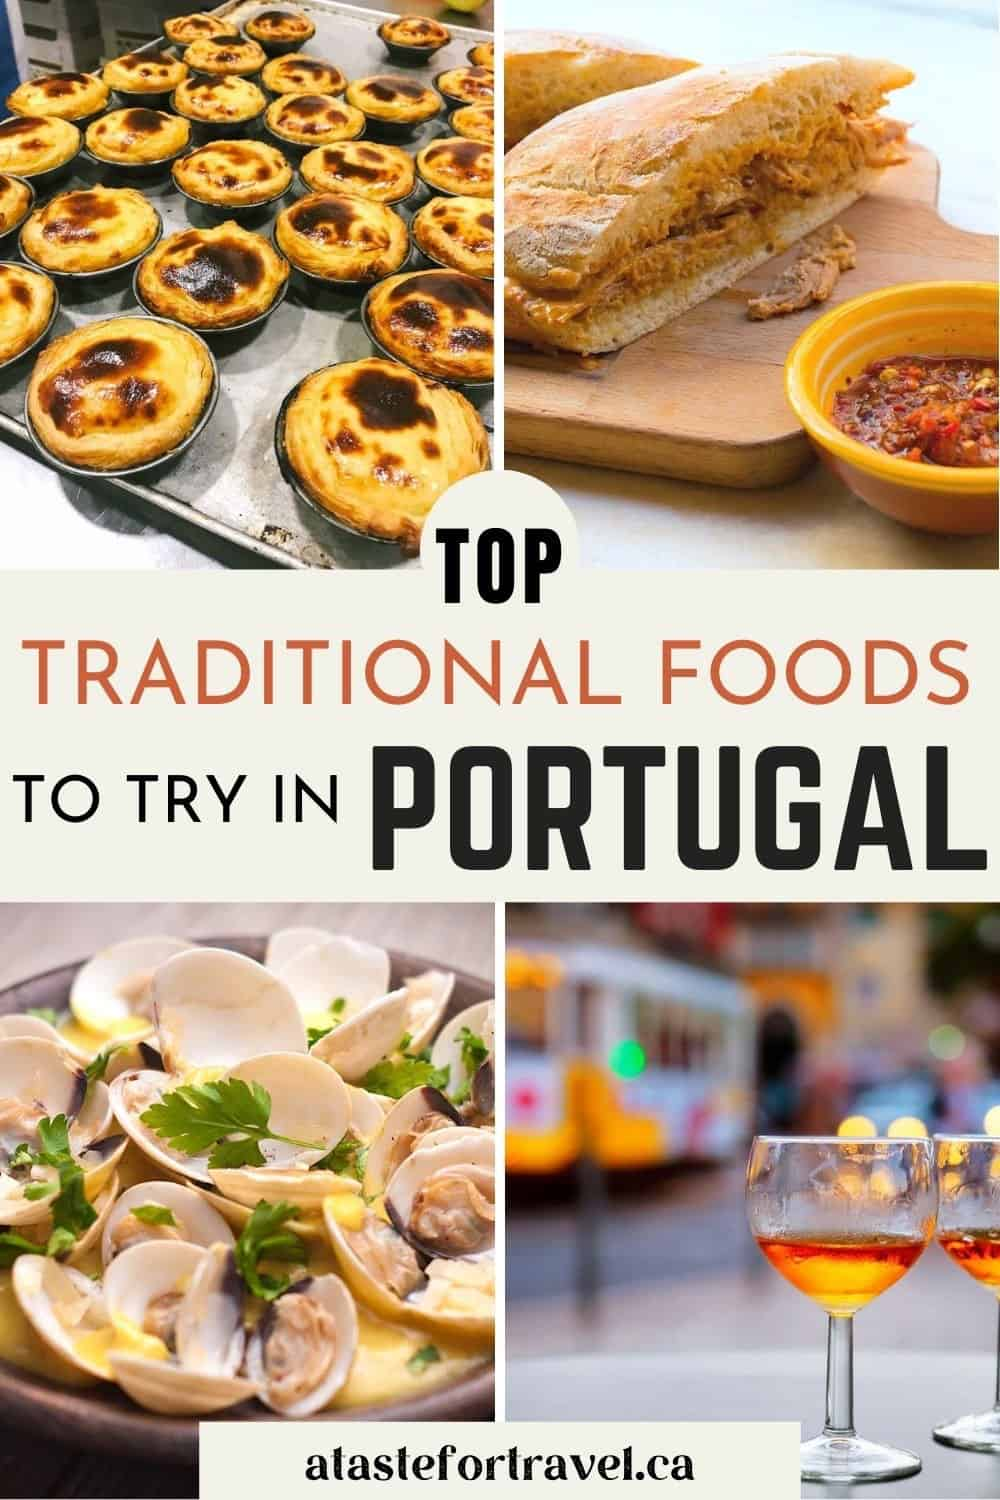 Collage of traditional Portuguese food and drink with text overlay for Pinterest.